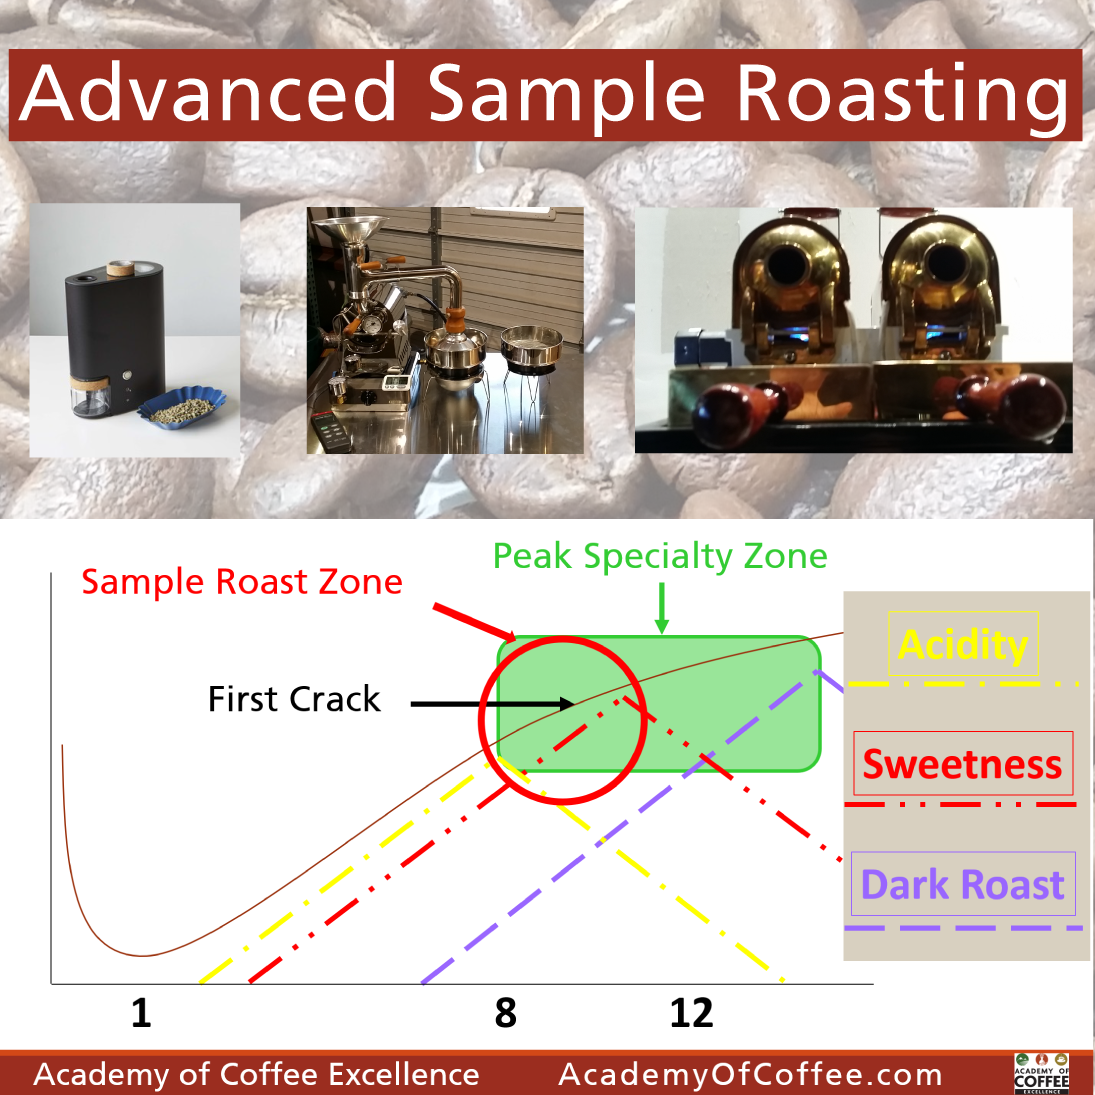 Roasting Intermediate + Advanced Sample Roasting Training